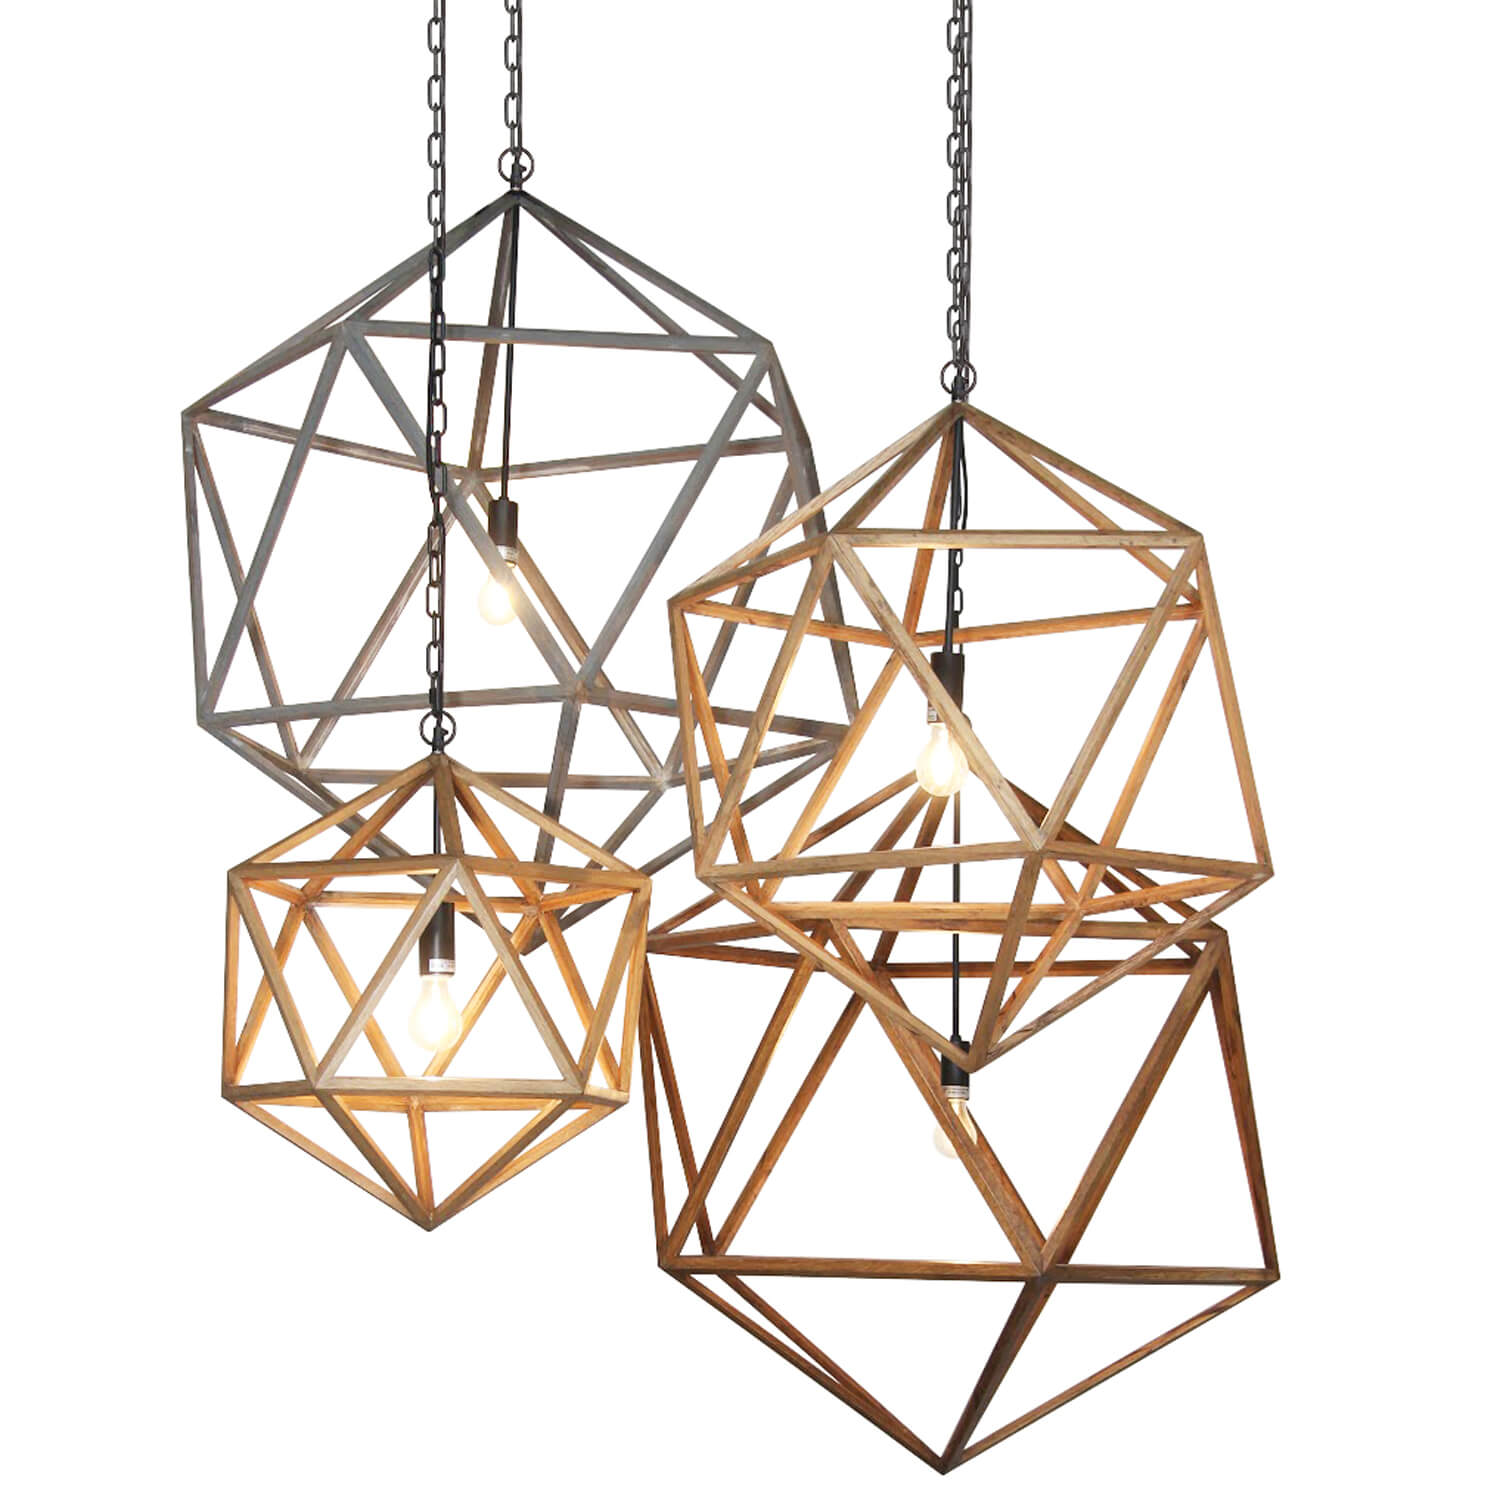 Natural Wooden Polyhedron